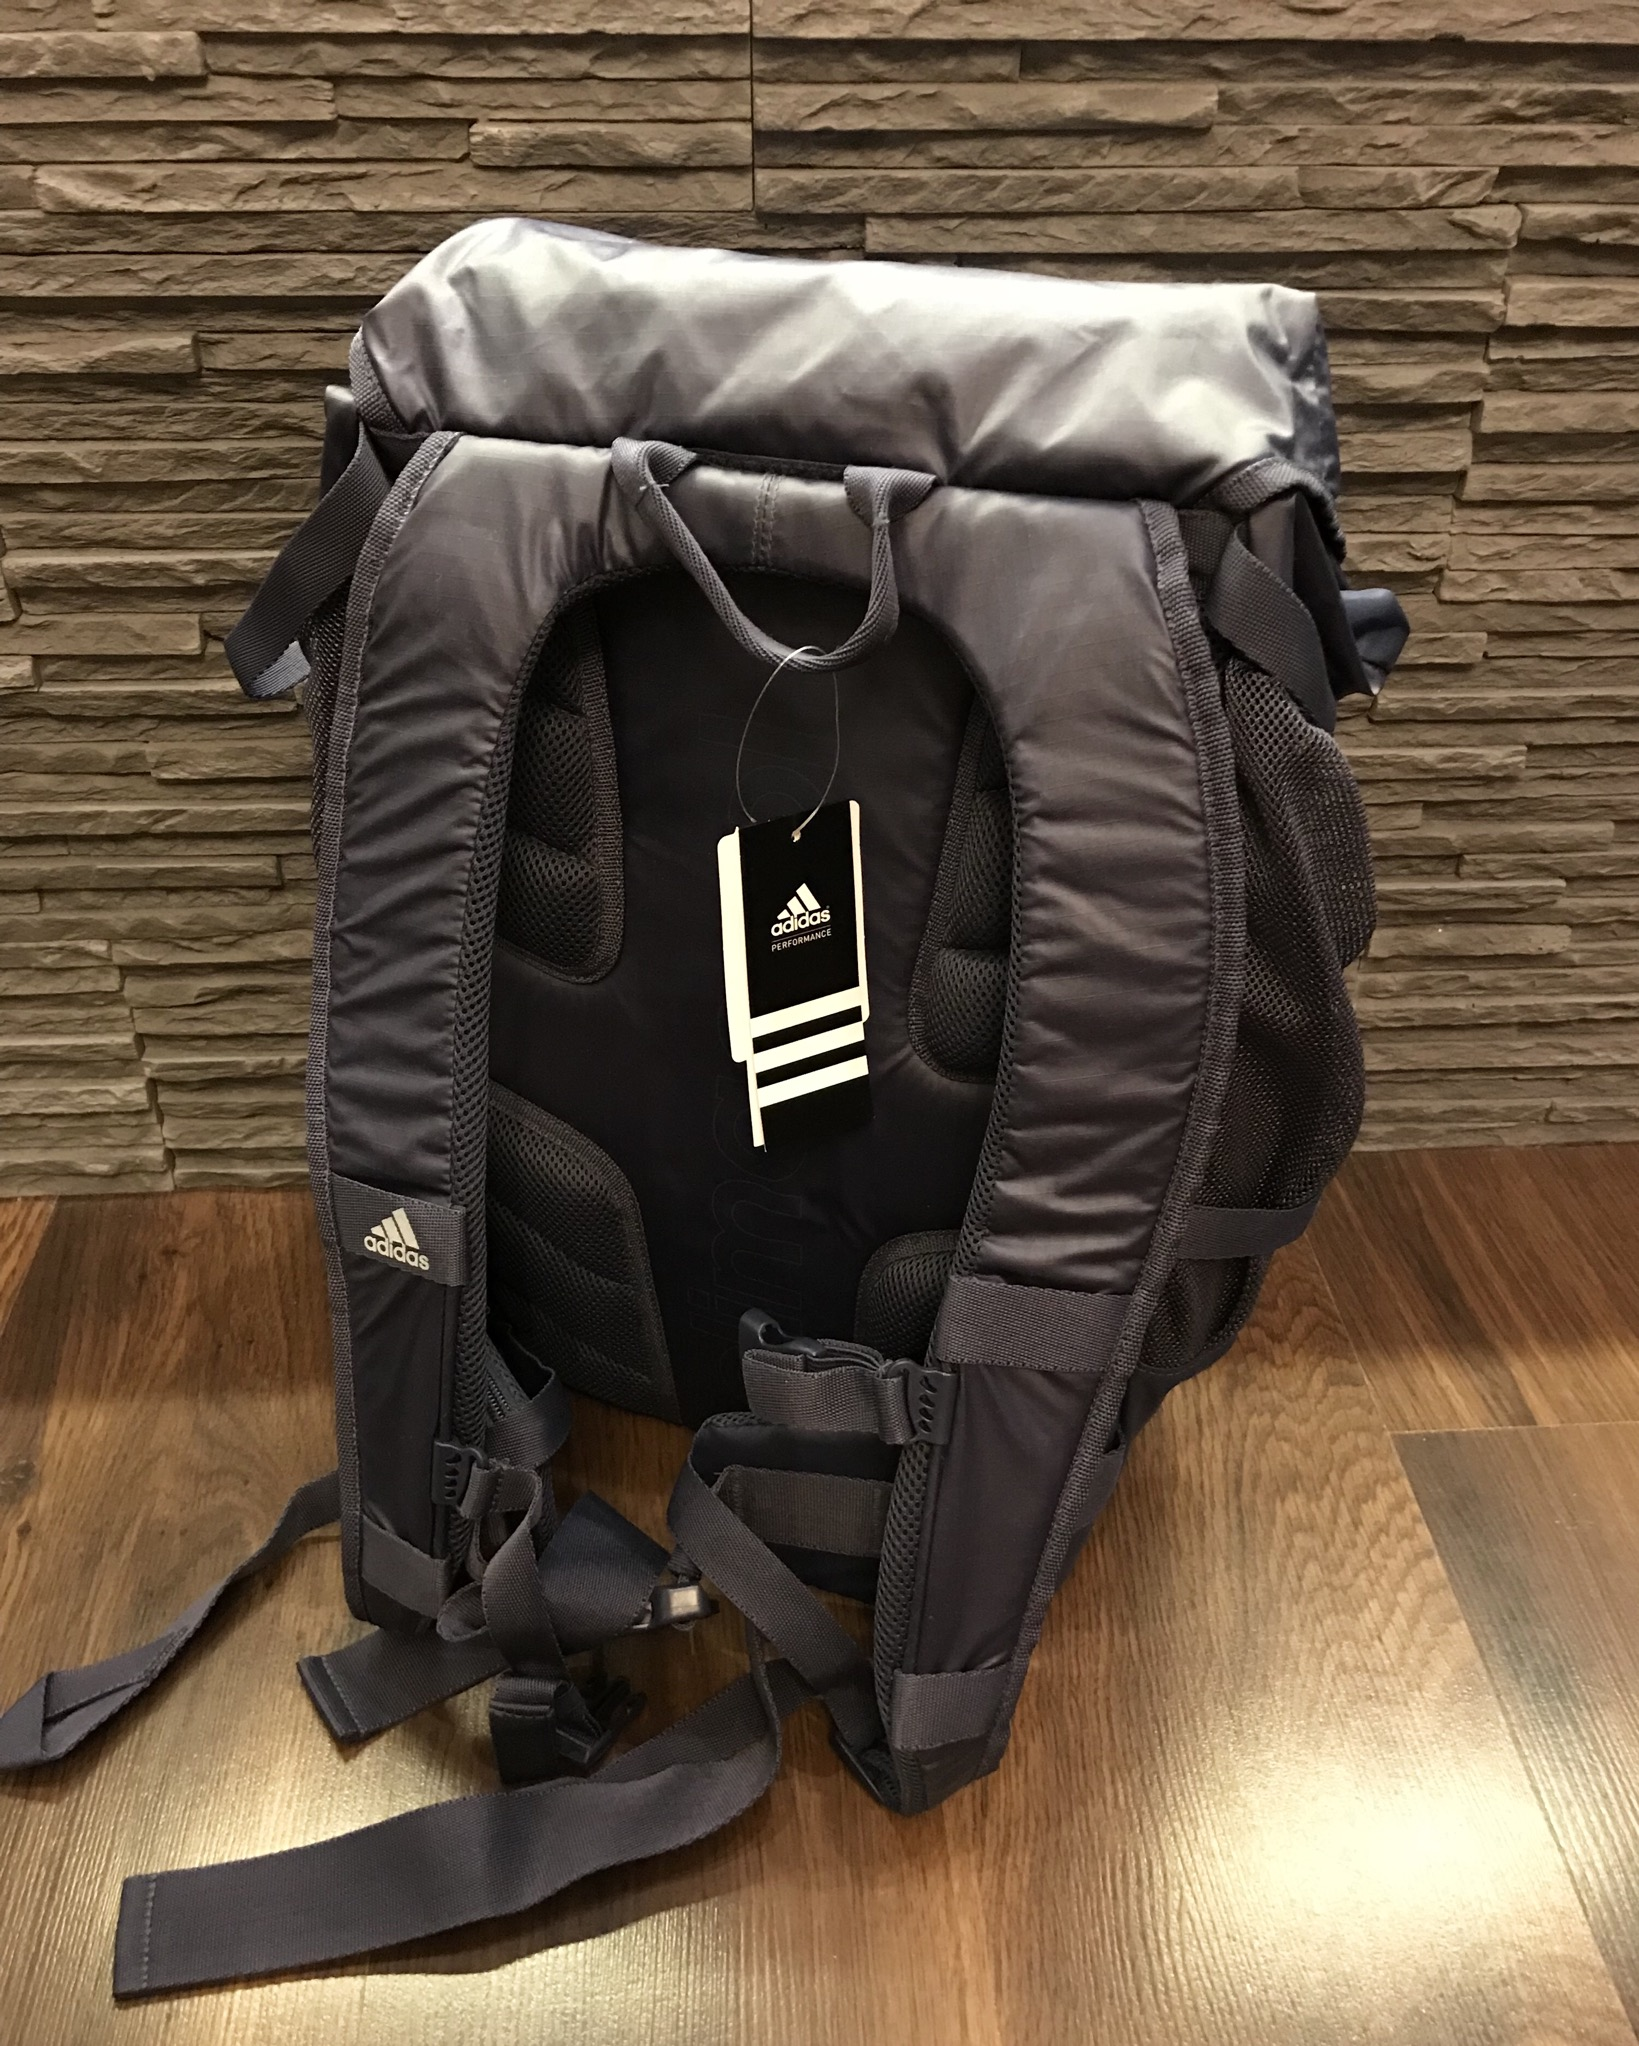 Plecak Adidas - Outdoor Backpack Active Top - 7093939475 - oficjalne ... a8b220f4377a9